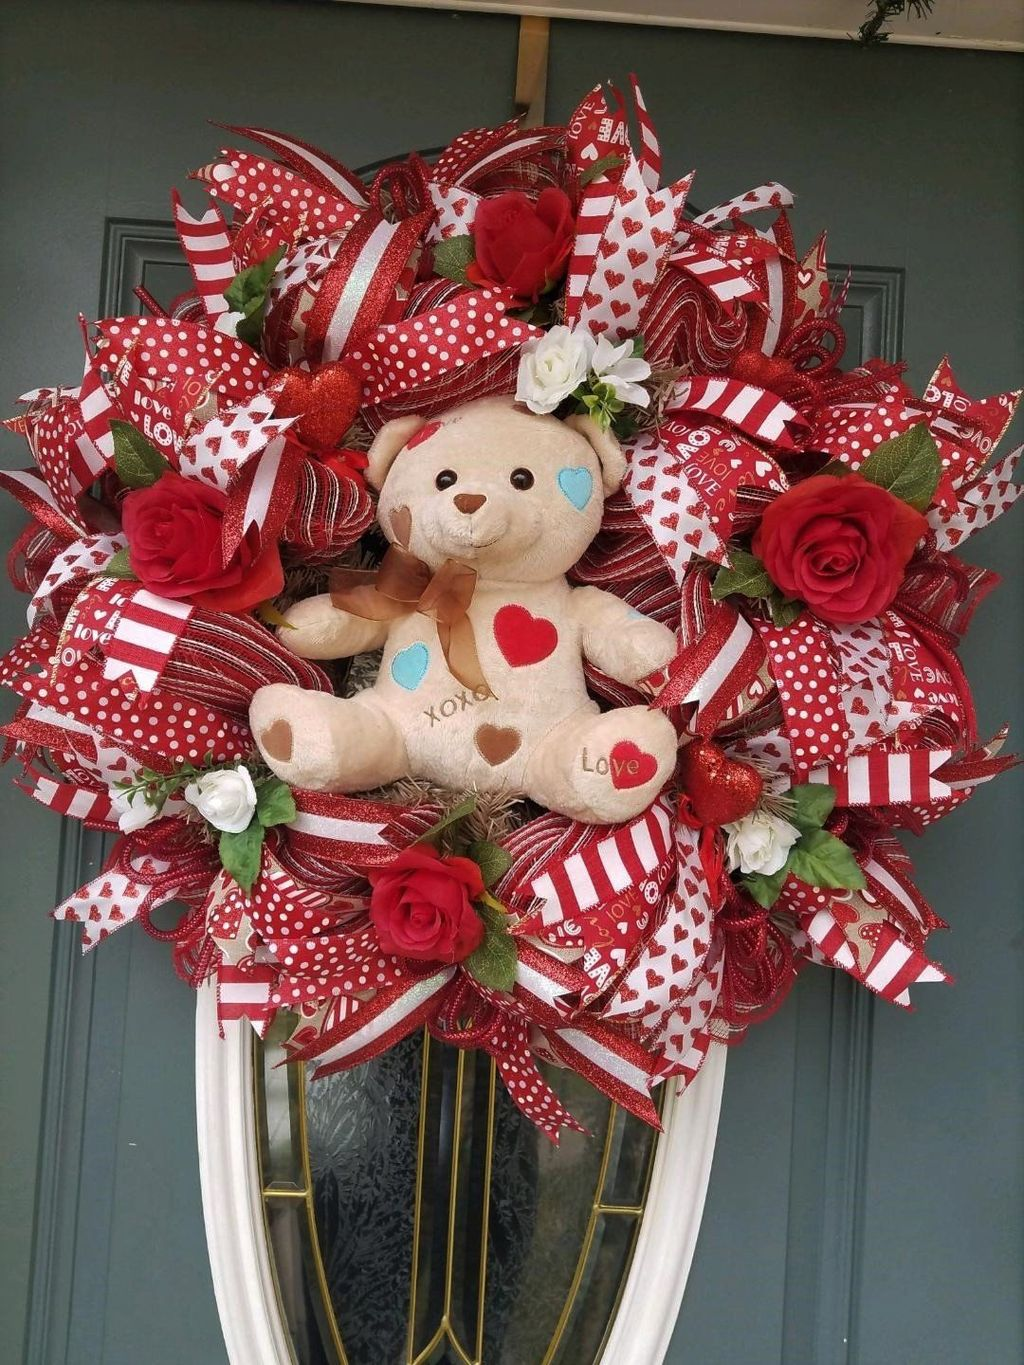 Fabulous Valentine Wreath Design Ideas FOr Your Front Door Decor 04